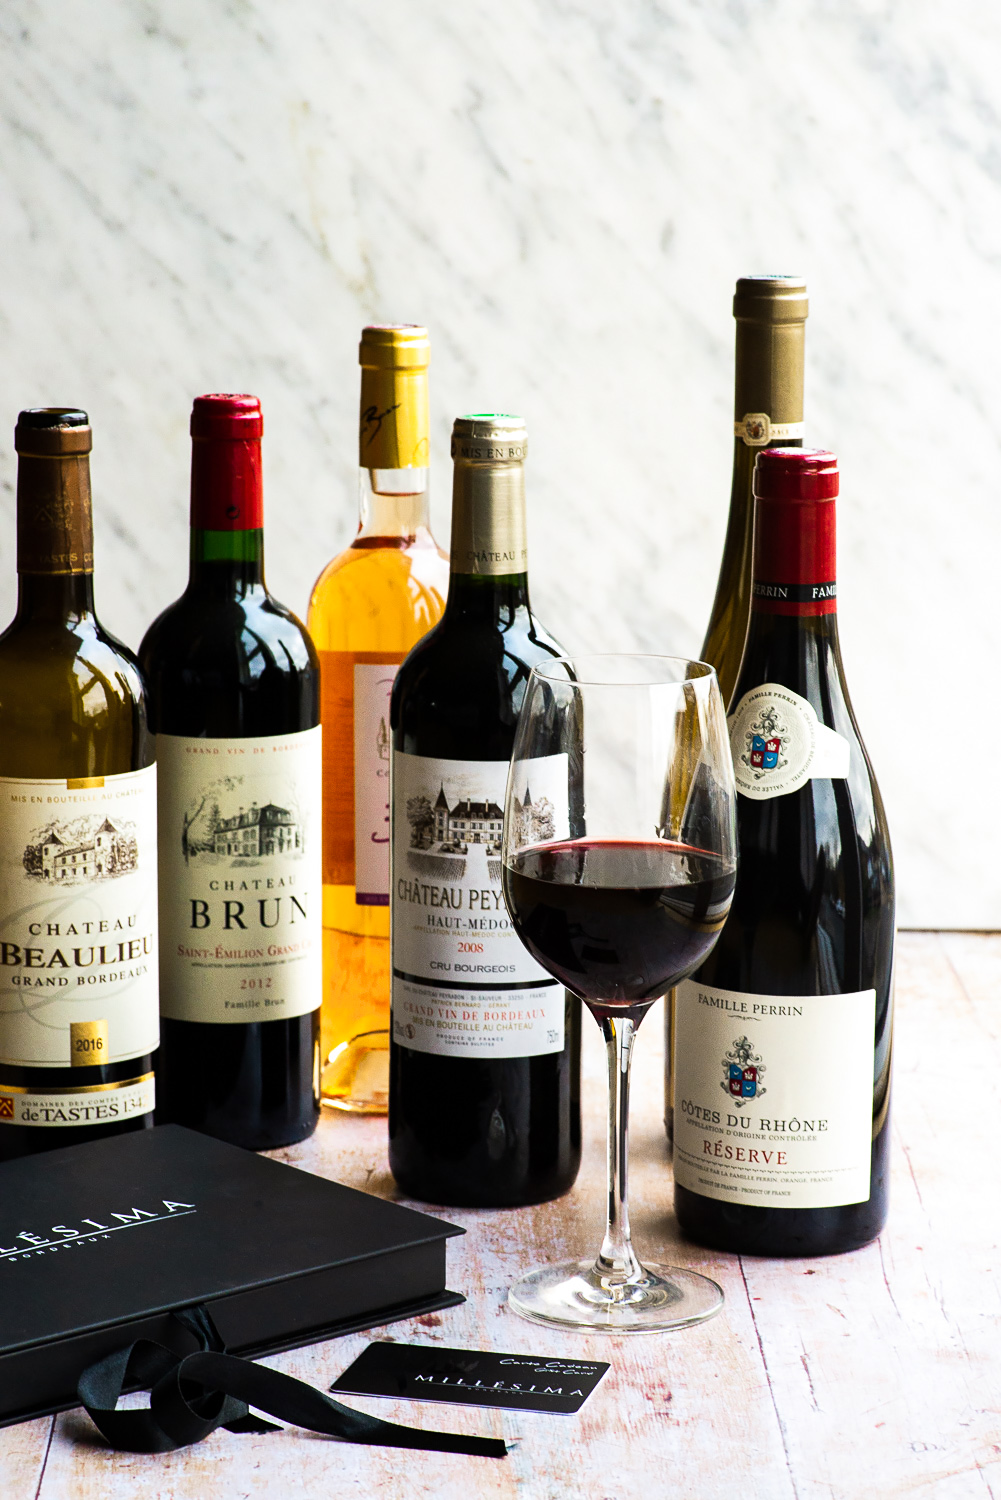 Tasting Case of 6 Wines | Millesima, a Bordeaux-based wine merchant with one of the most comprehensive selections of fines wines from everywhere in the world.